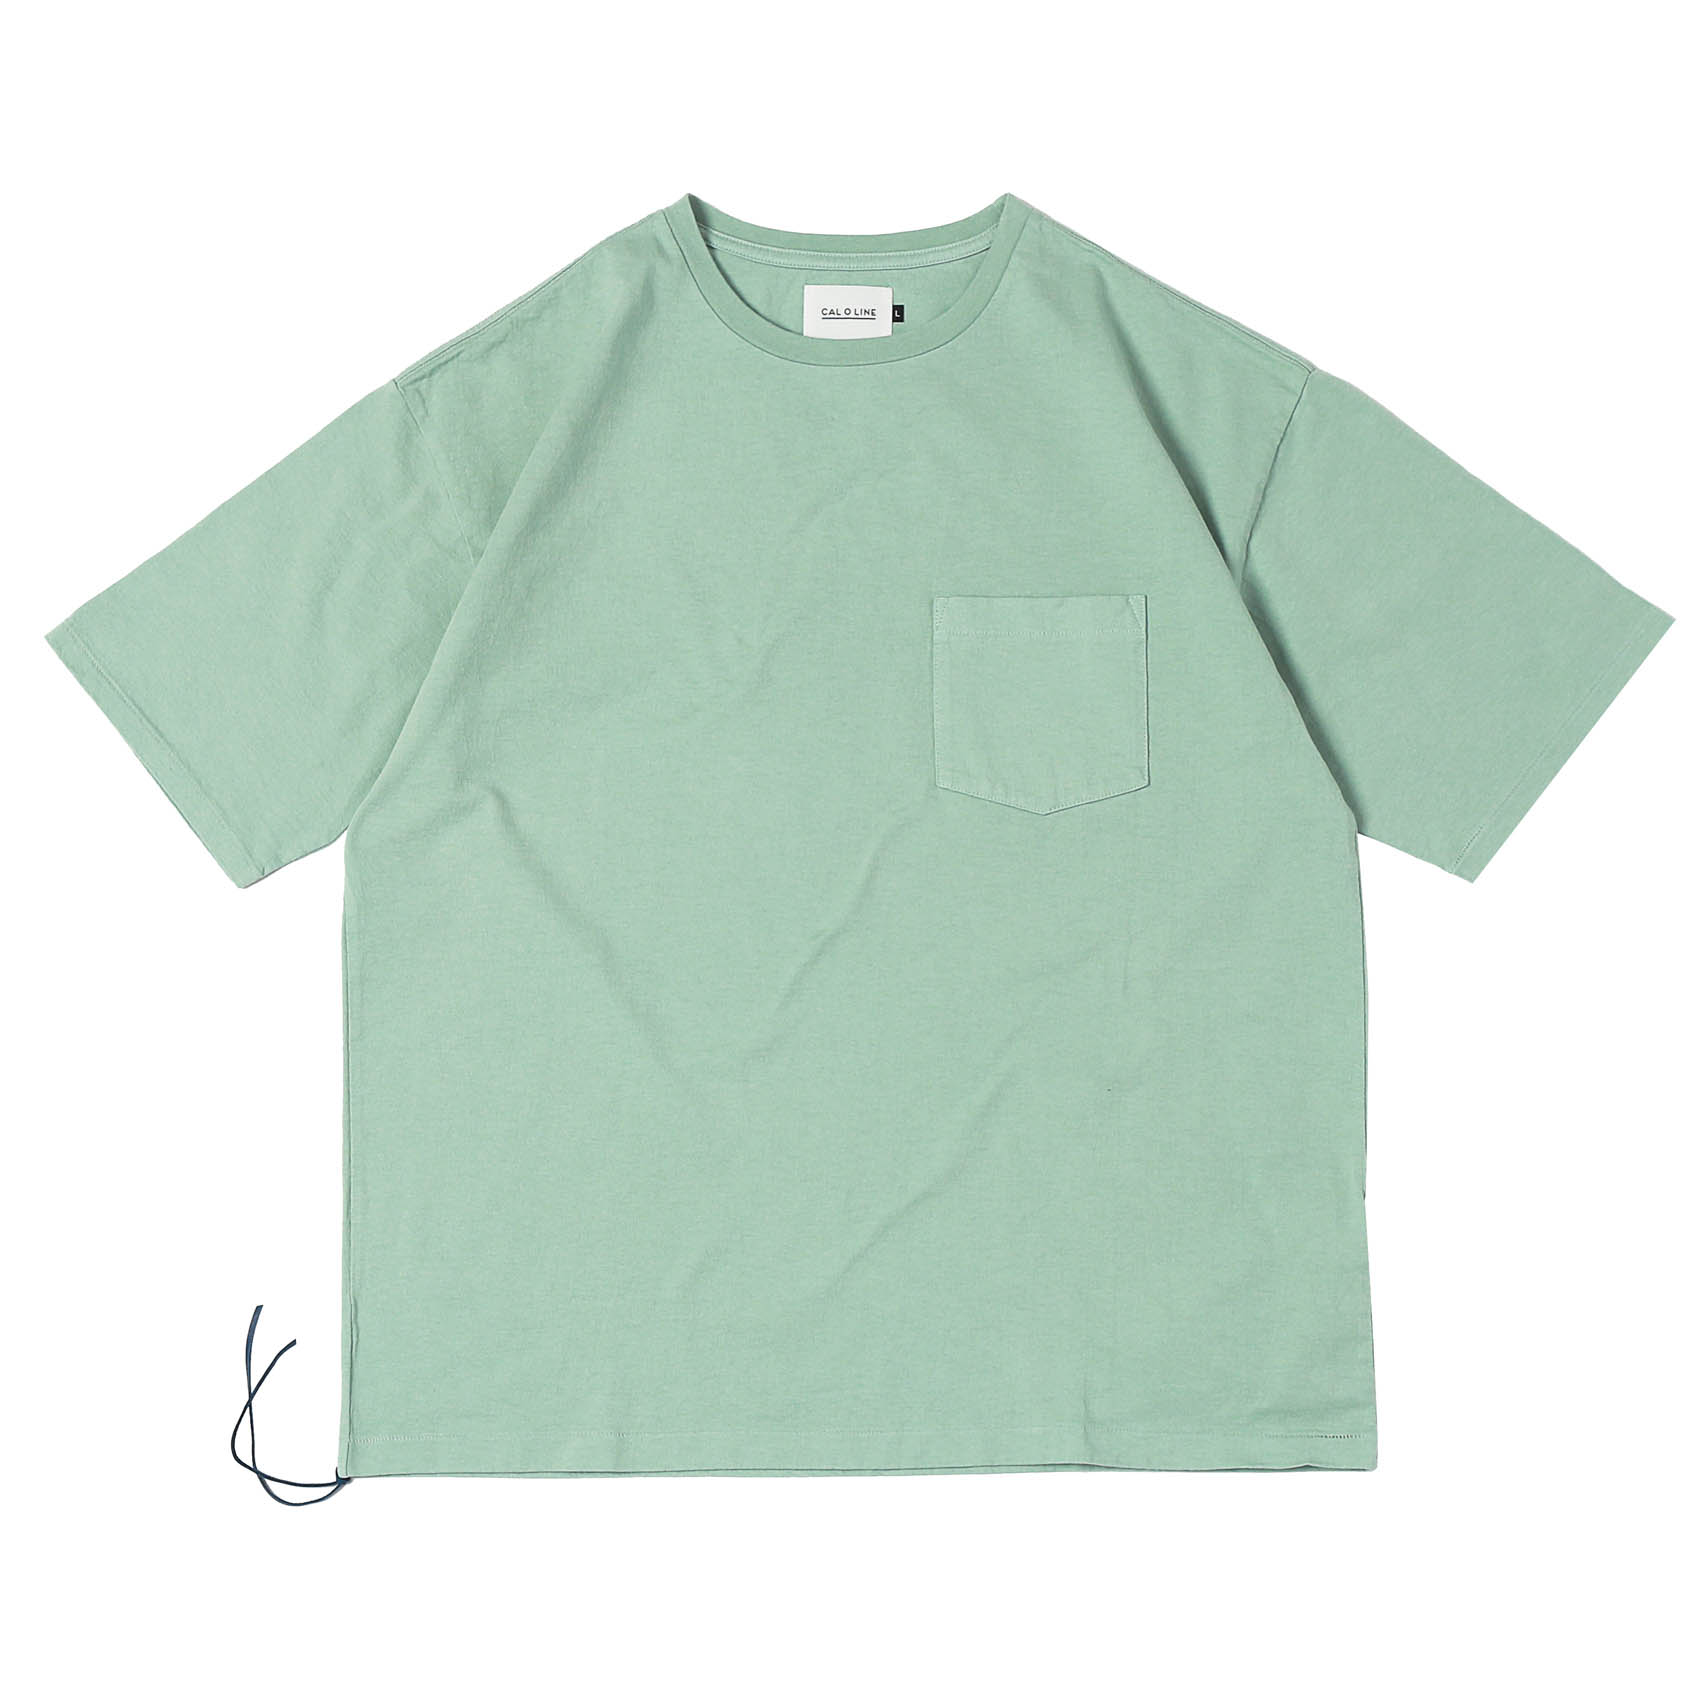 SOLID COLOR POCKET TEE - MINT